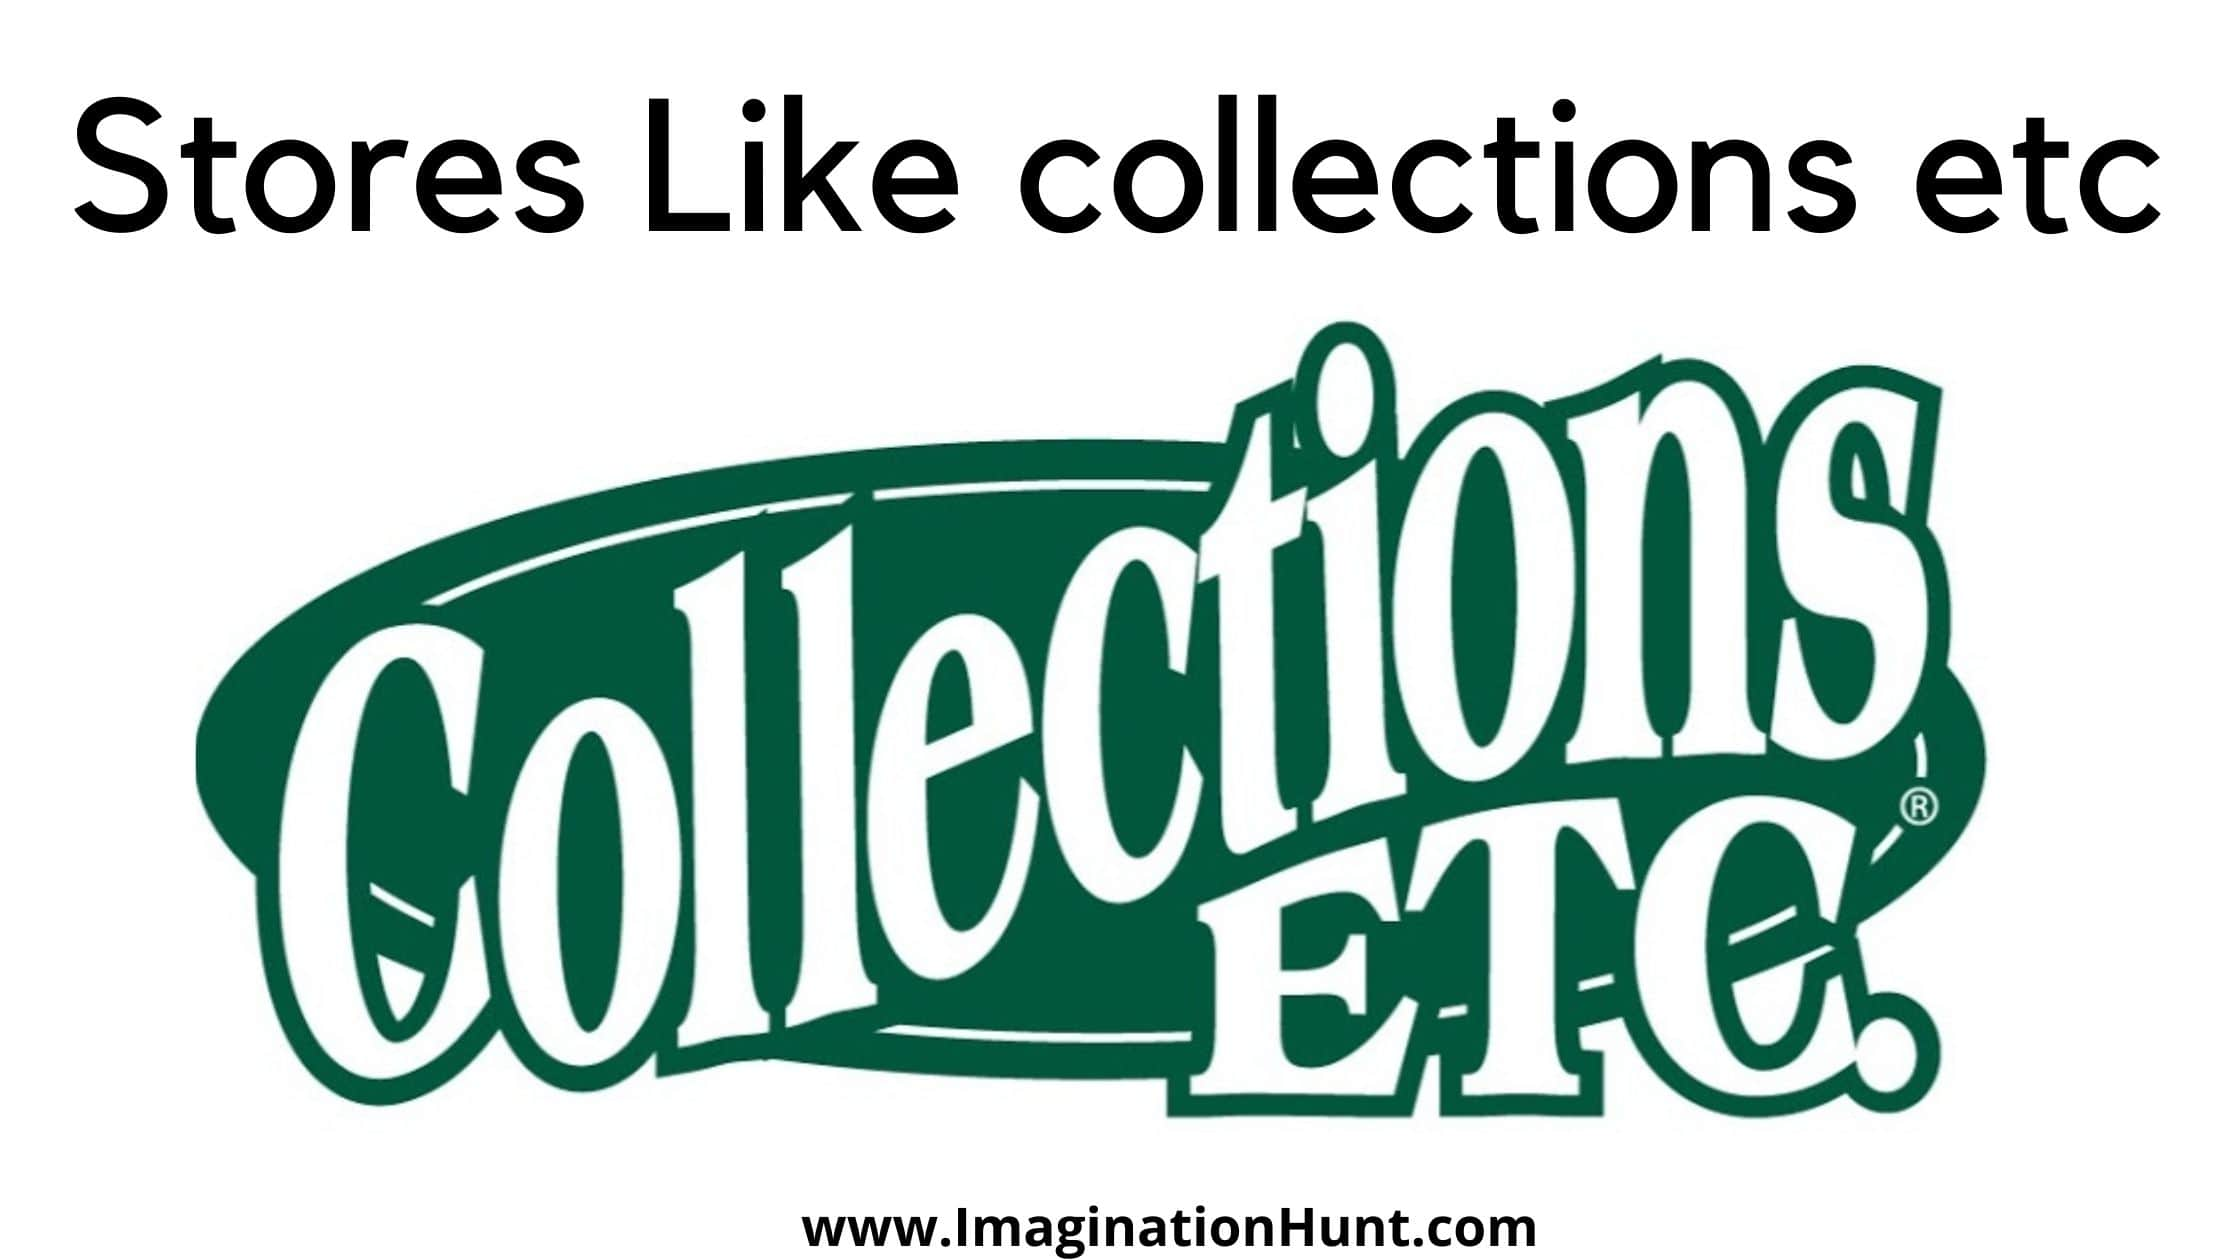 Stores like Collections Etc